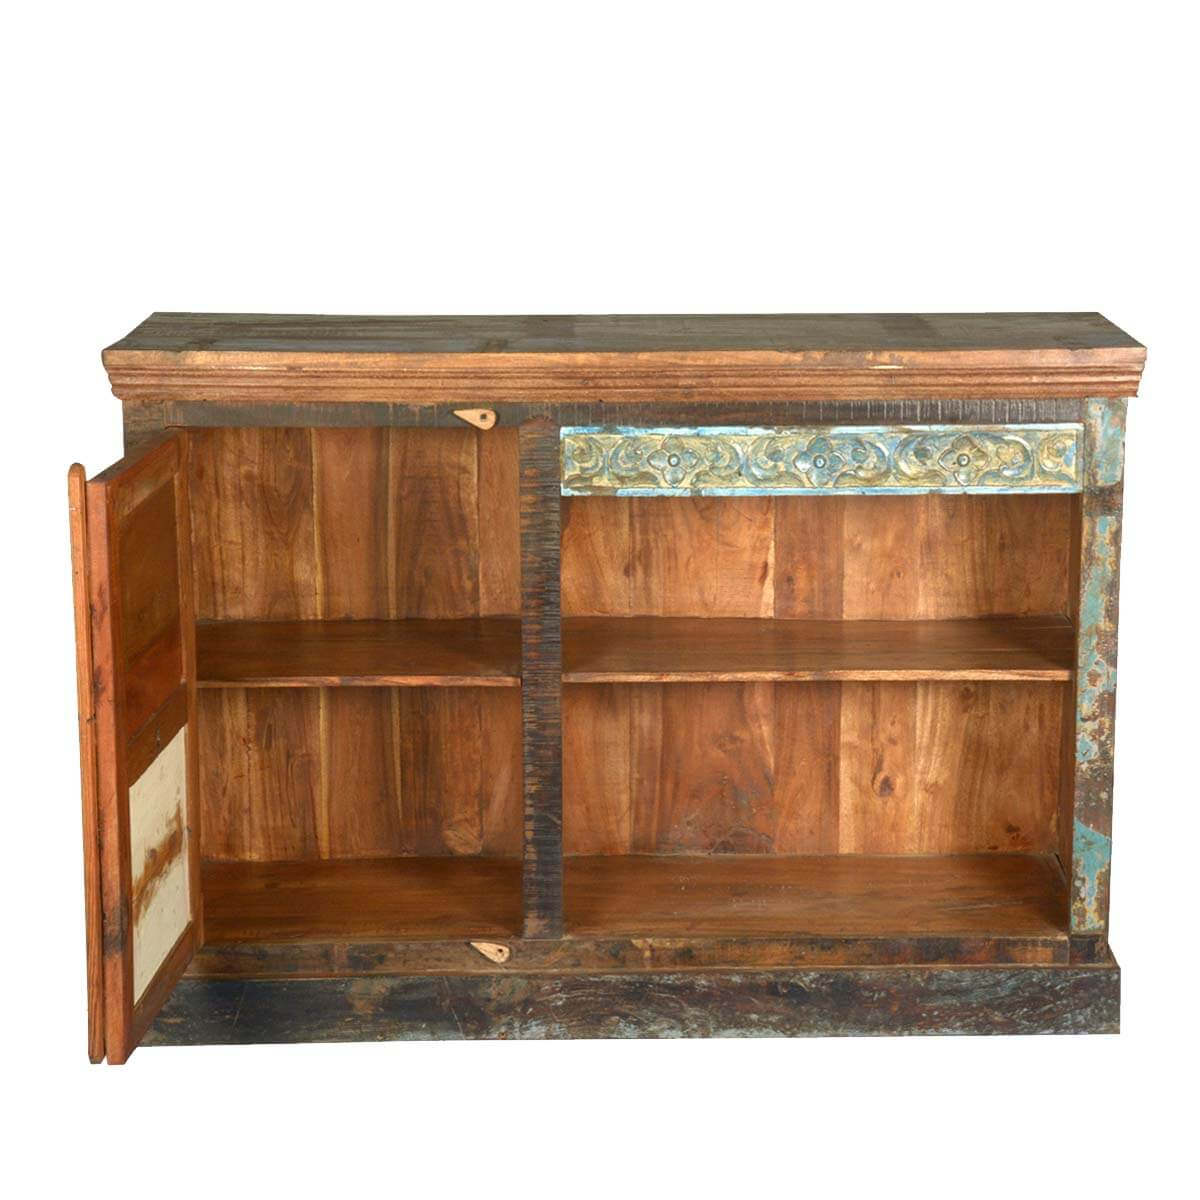 Drakensberg distressed old reclaimed wood media console tv